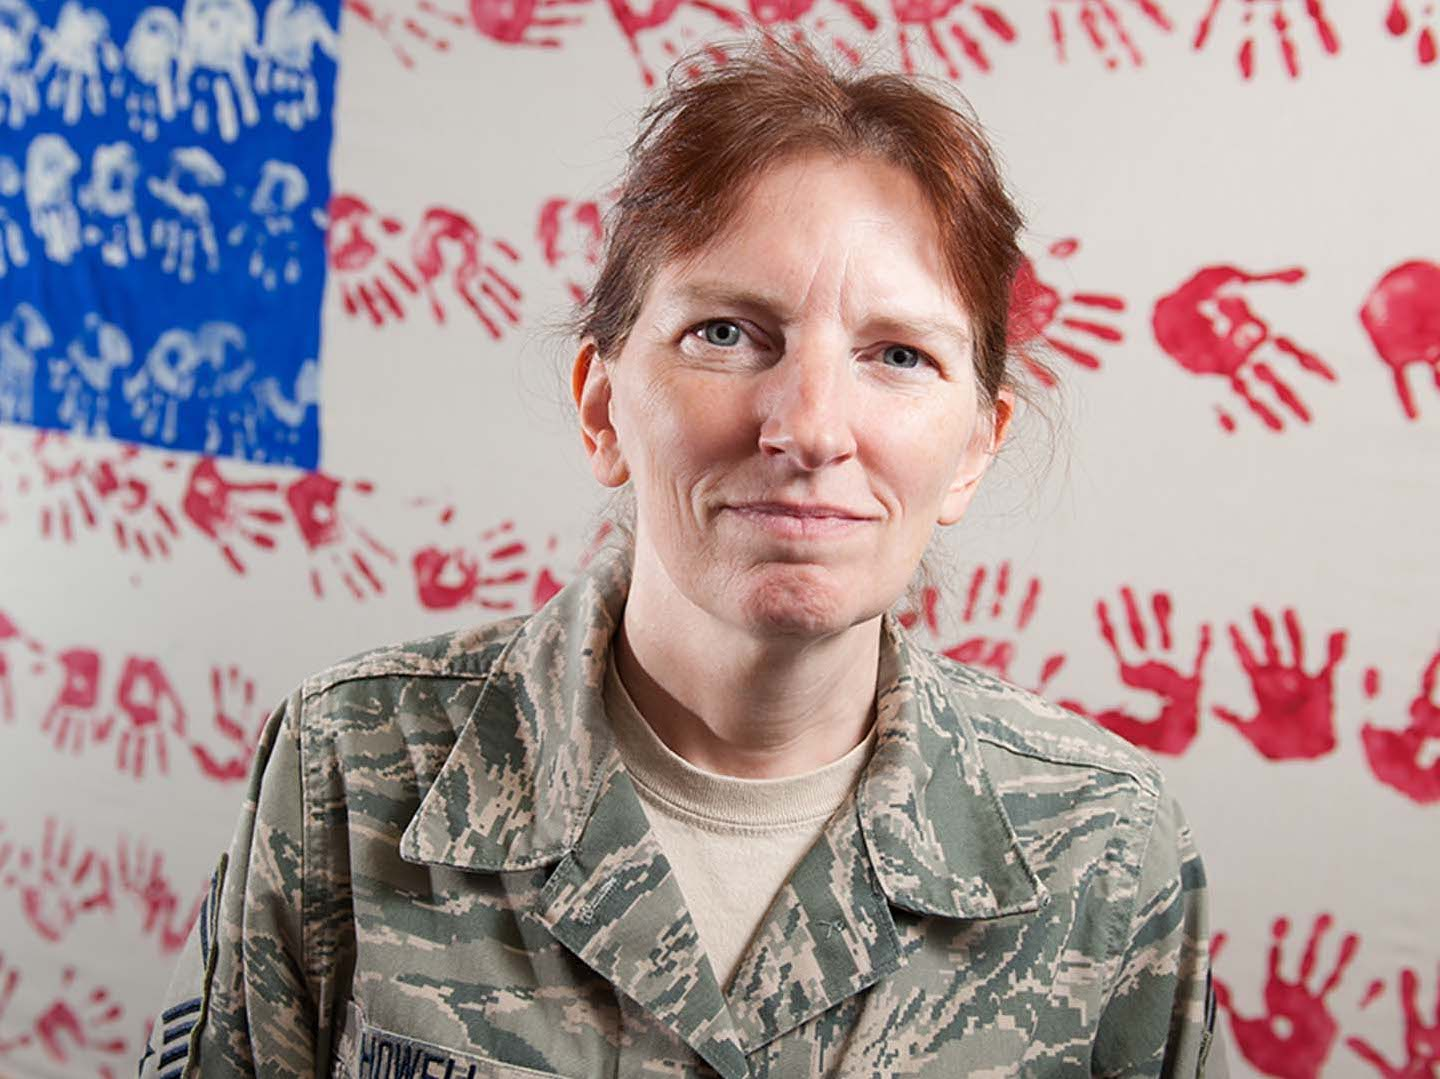 181st IW Diversity and Inclusion